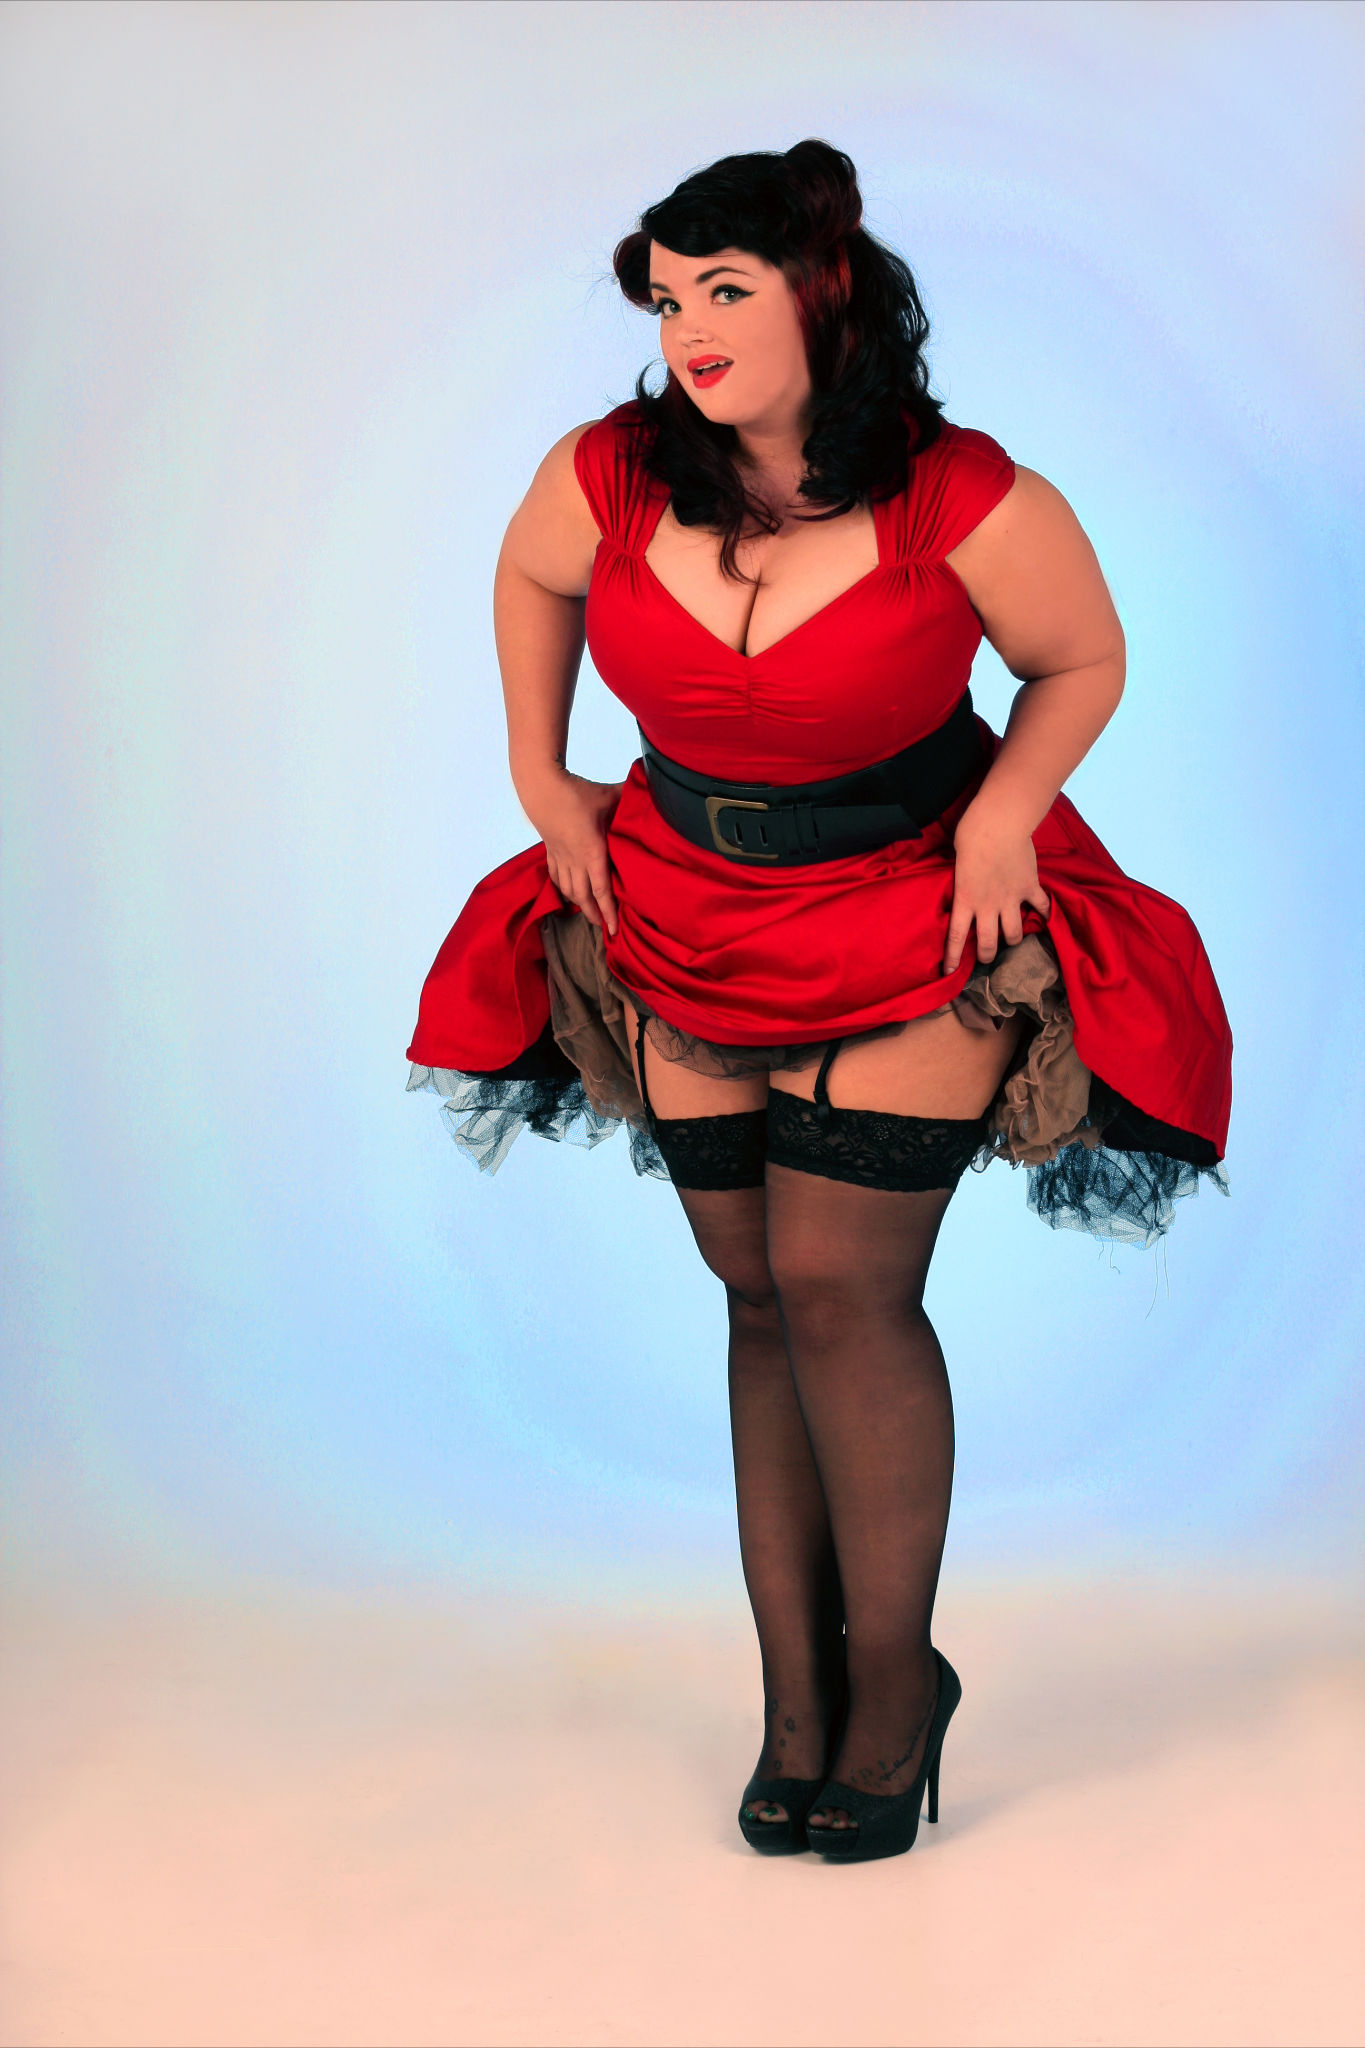 palmers bbw personals Curvy bbw dating personals for plus size women and their admirers 2,909 likes 11 talking about this wwwcurvy-bbw-datingcom empowering plus size.